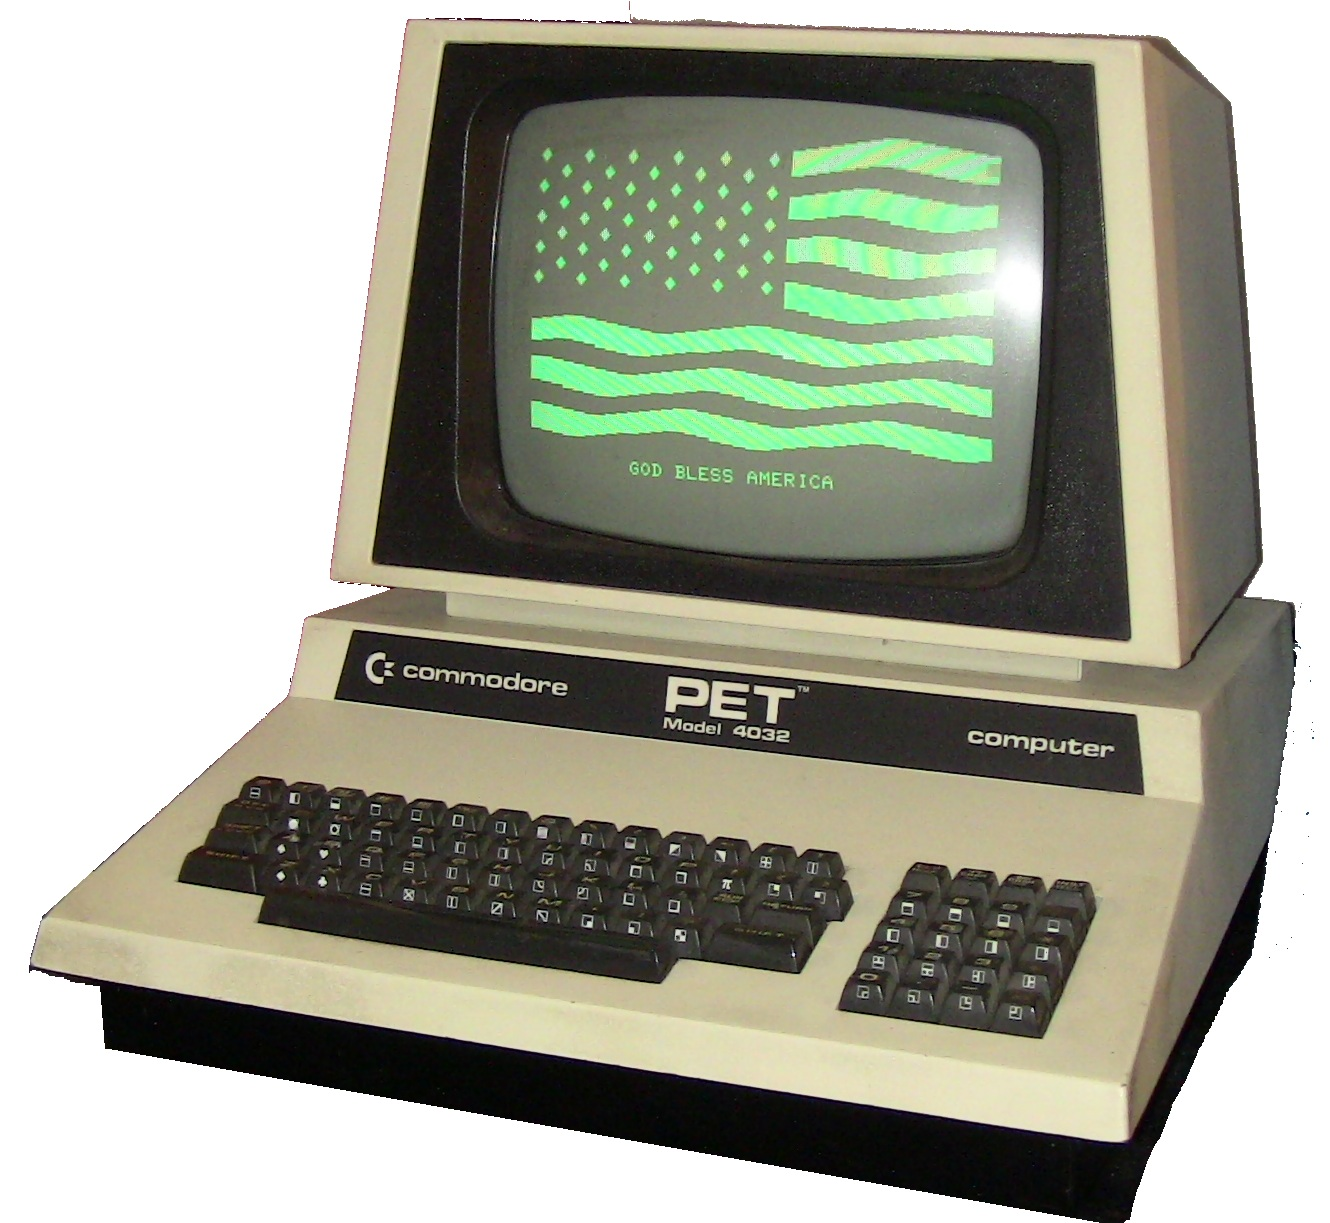 His first PC was a Commodore PET